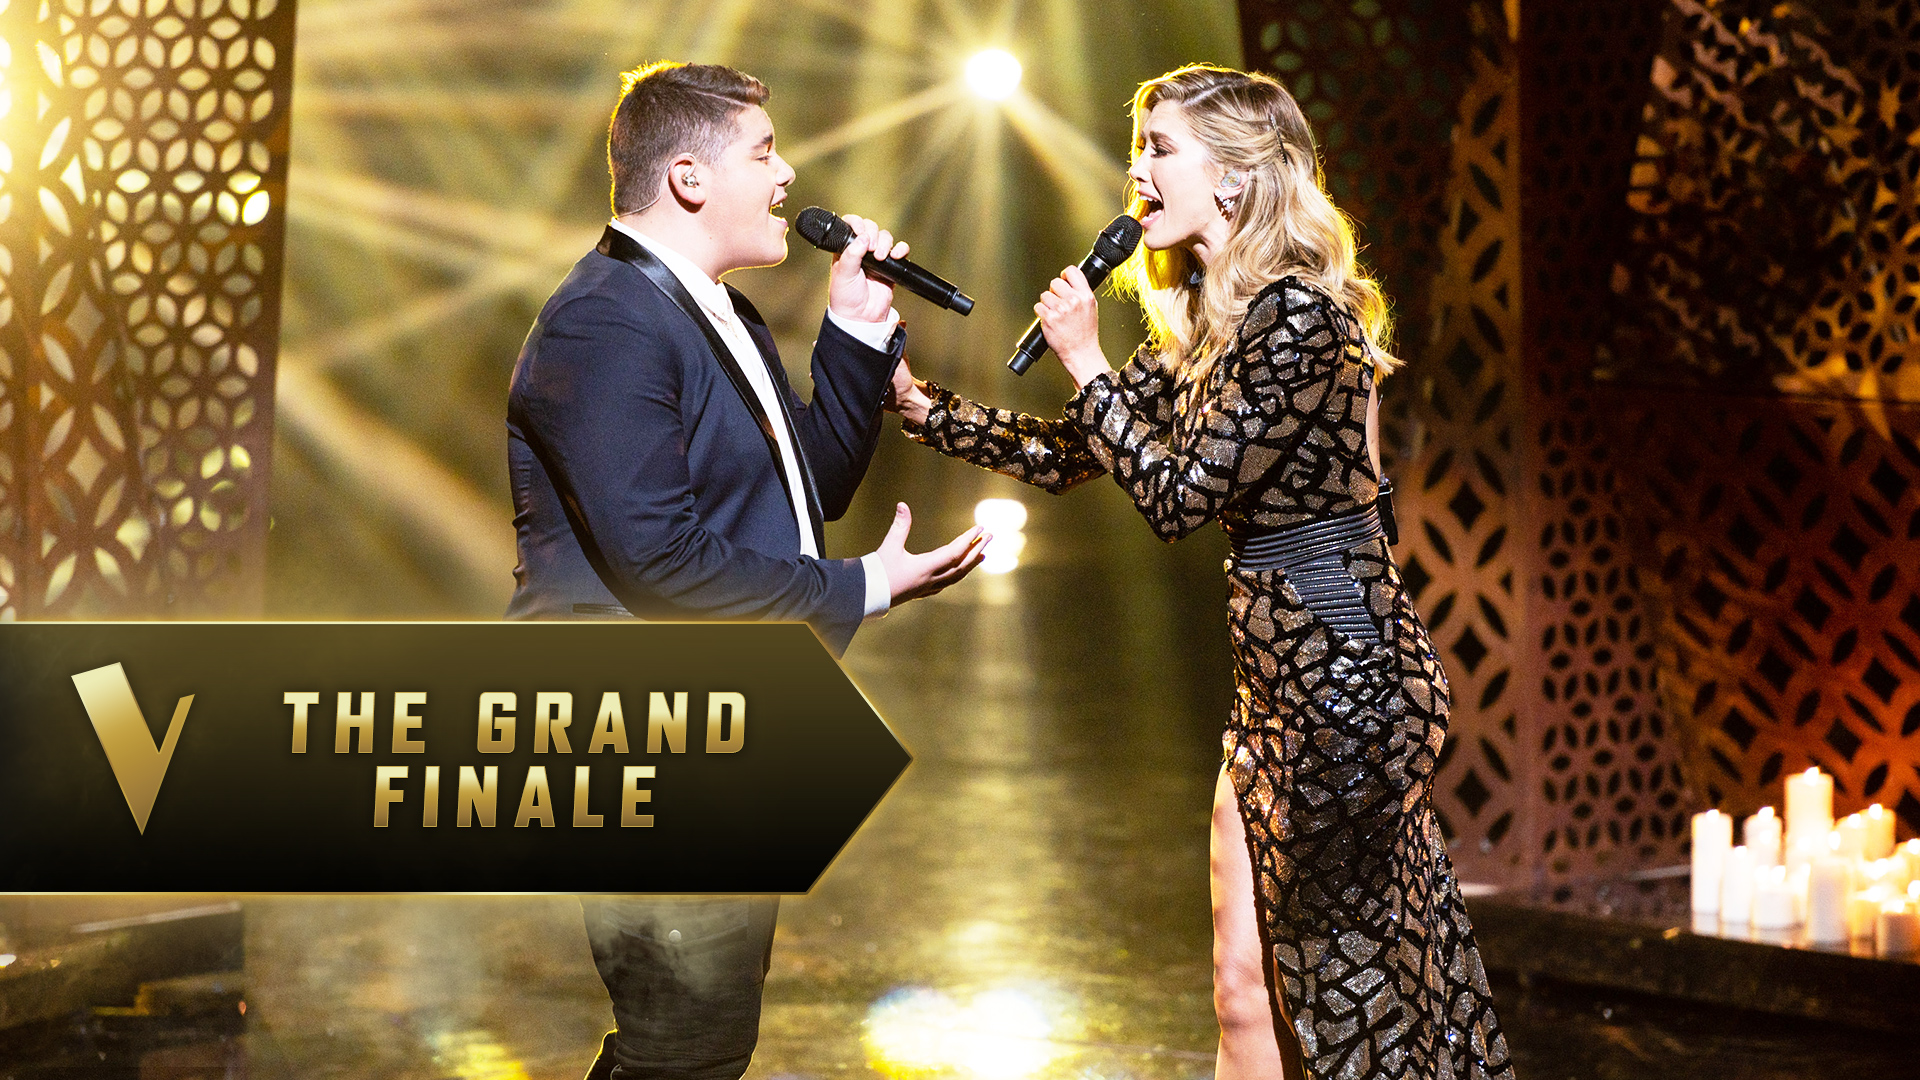 The Grand Finale: Delta Goodrem and Jordan Anthony 'You Say'